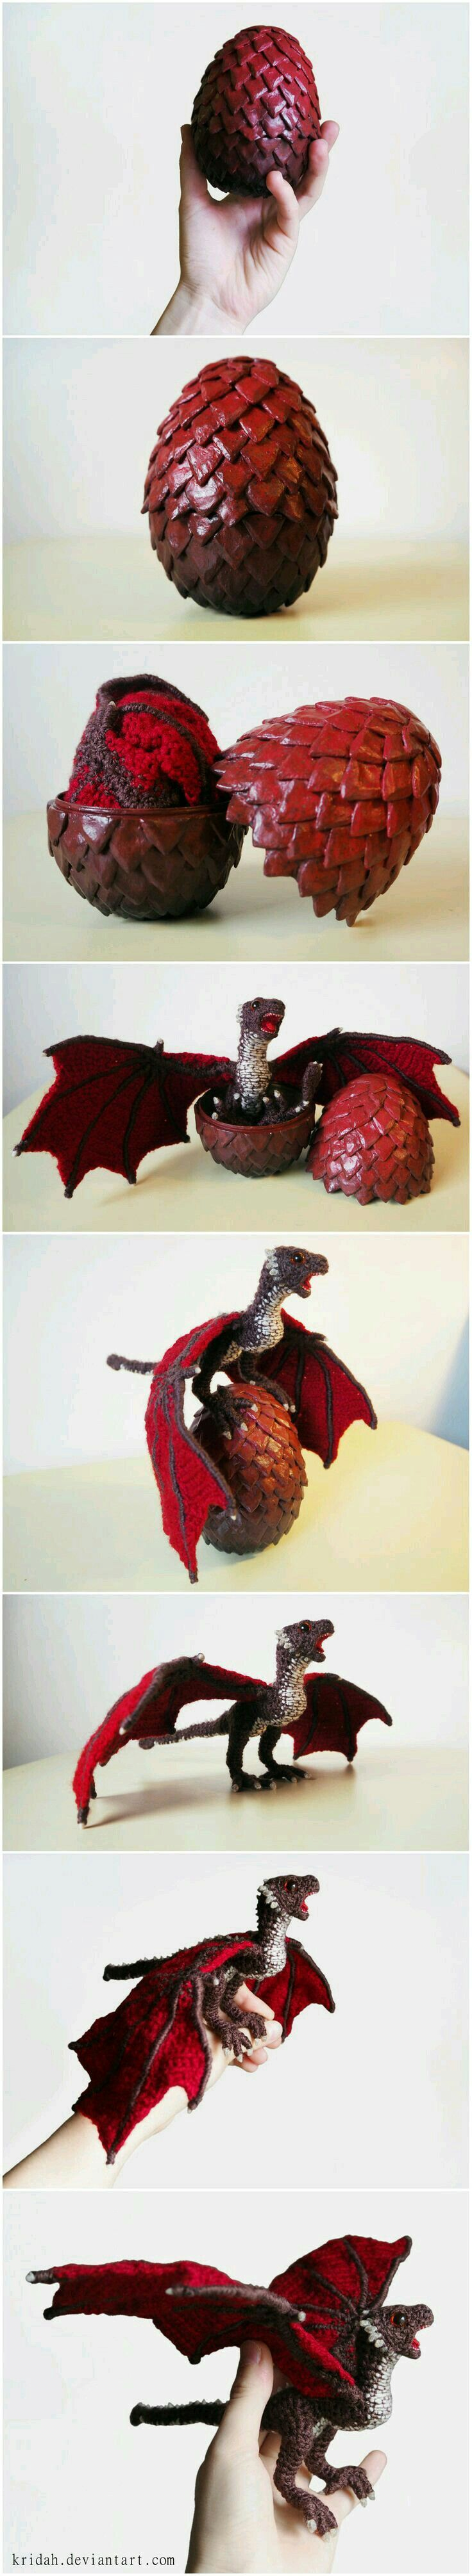 best ideas about toy dragon red dragon film to celebrate that game of thrones is finally back i decided to make a dragon egg and a little baby dragon to go it amp nbsp the egg i bought a